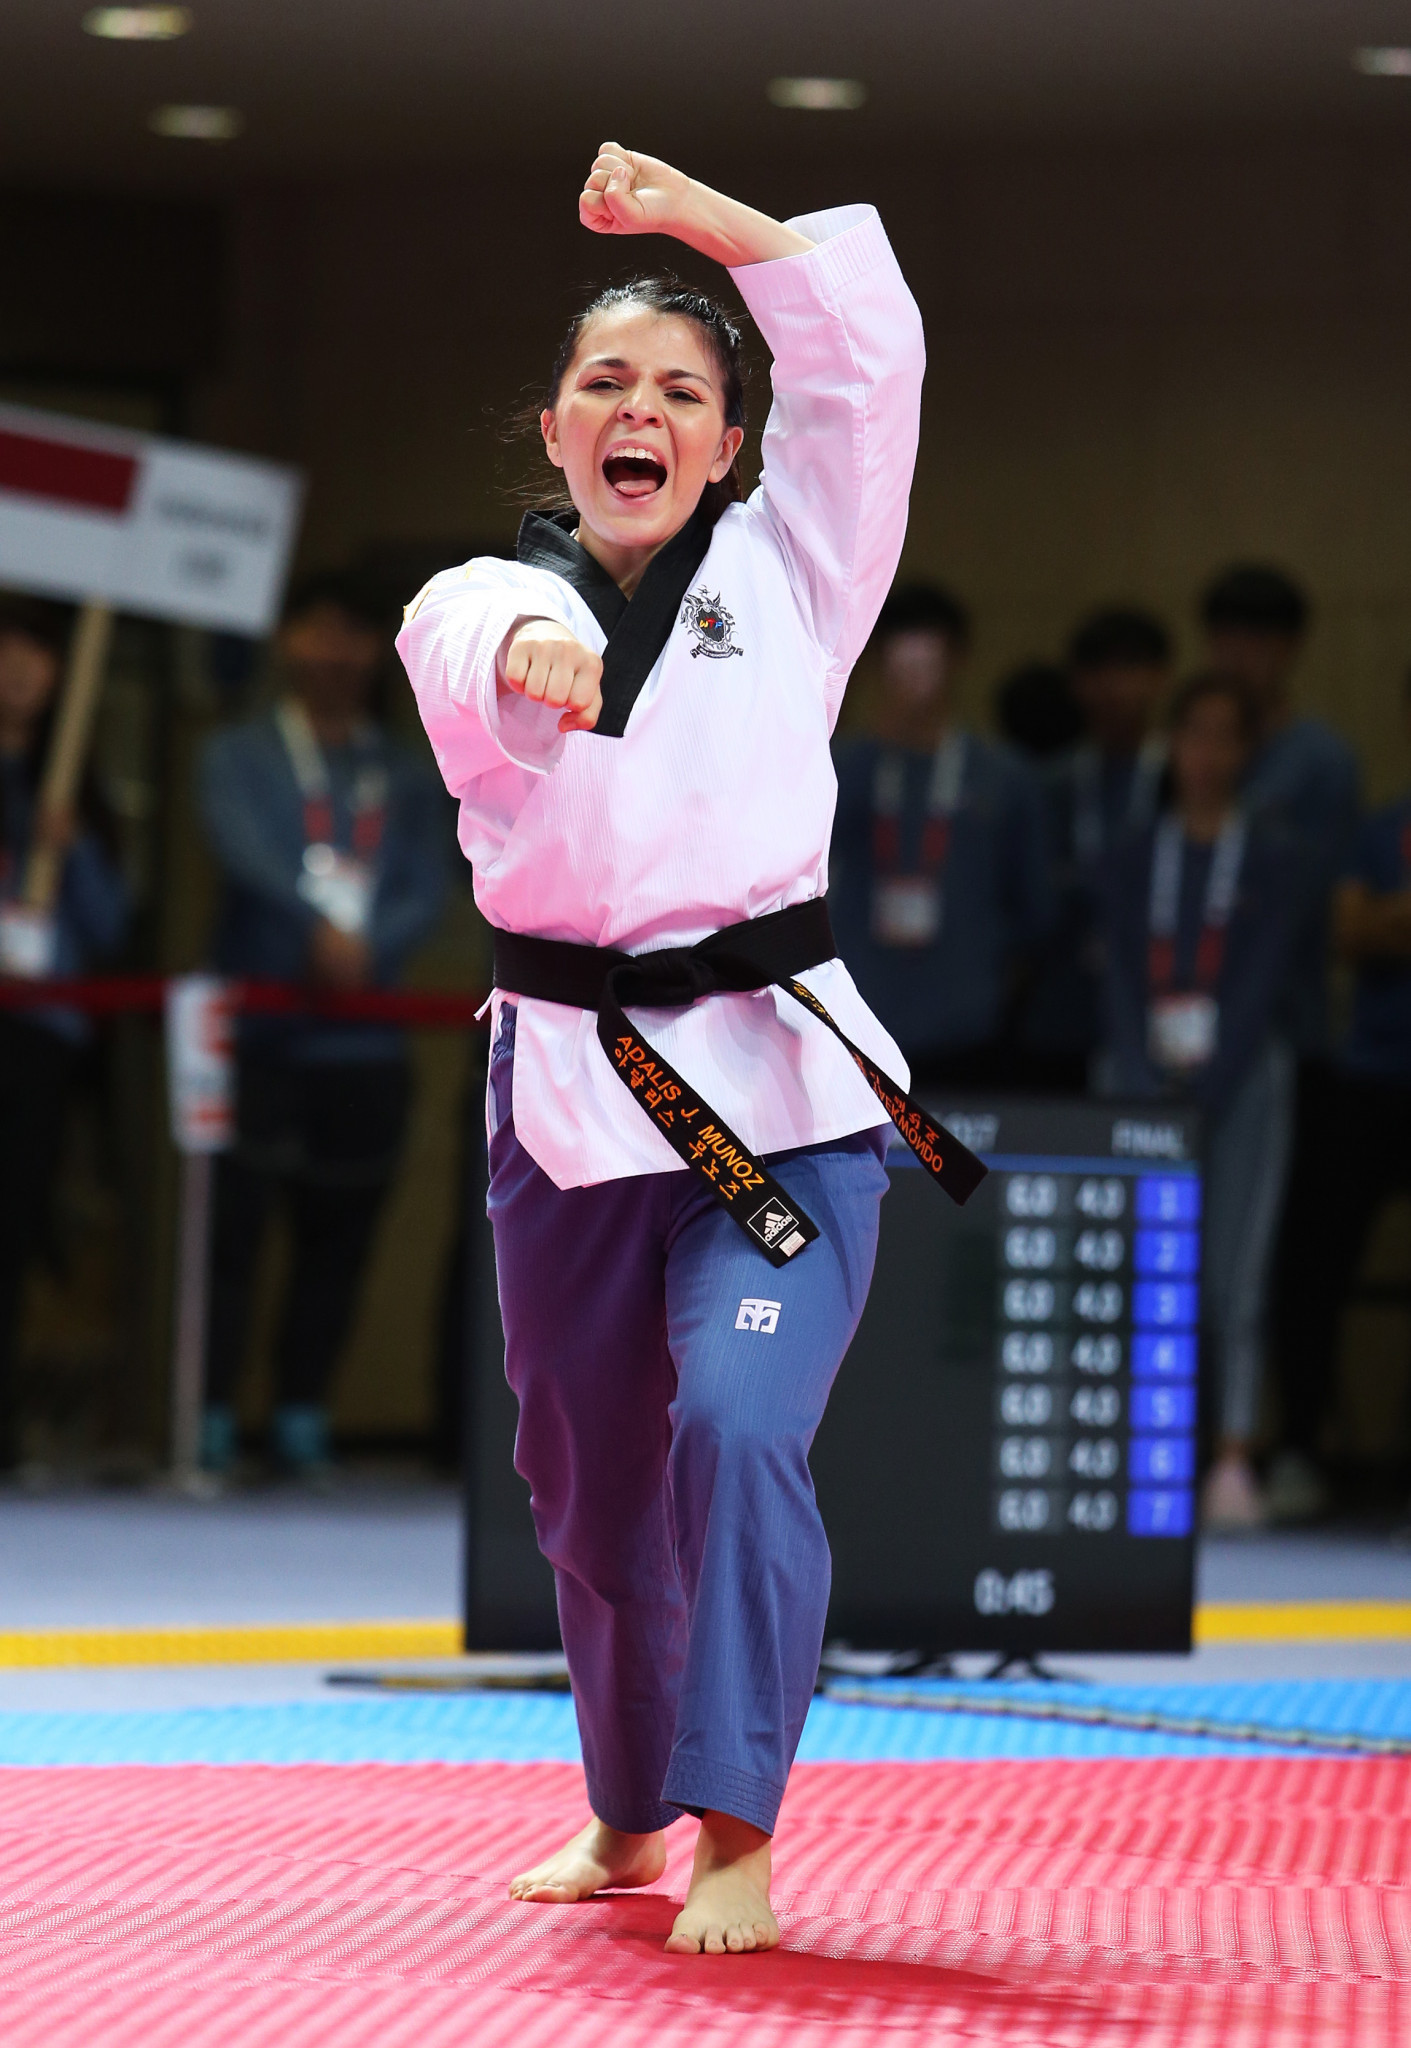 Elite and family categories will be held at the virtual event ©World Taekwondo